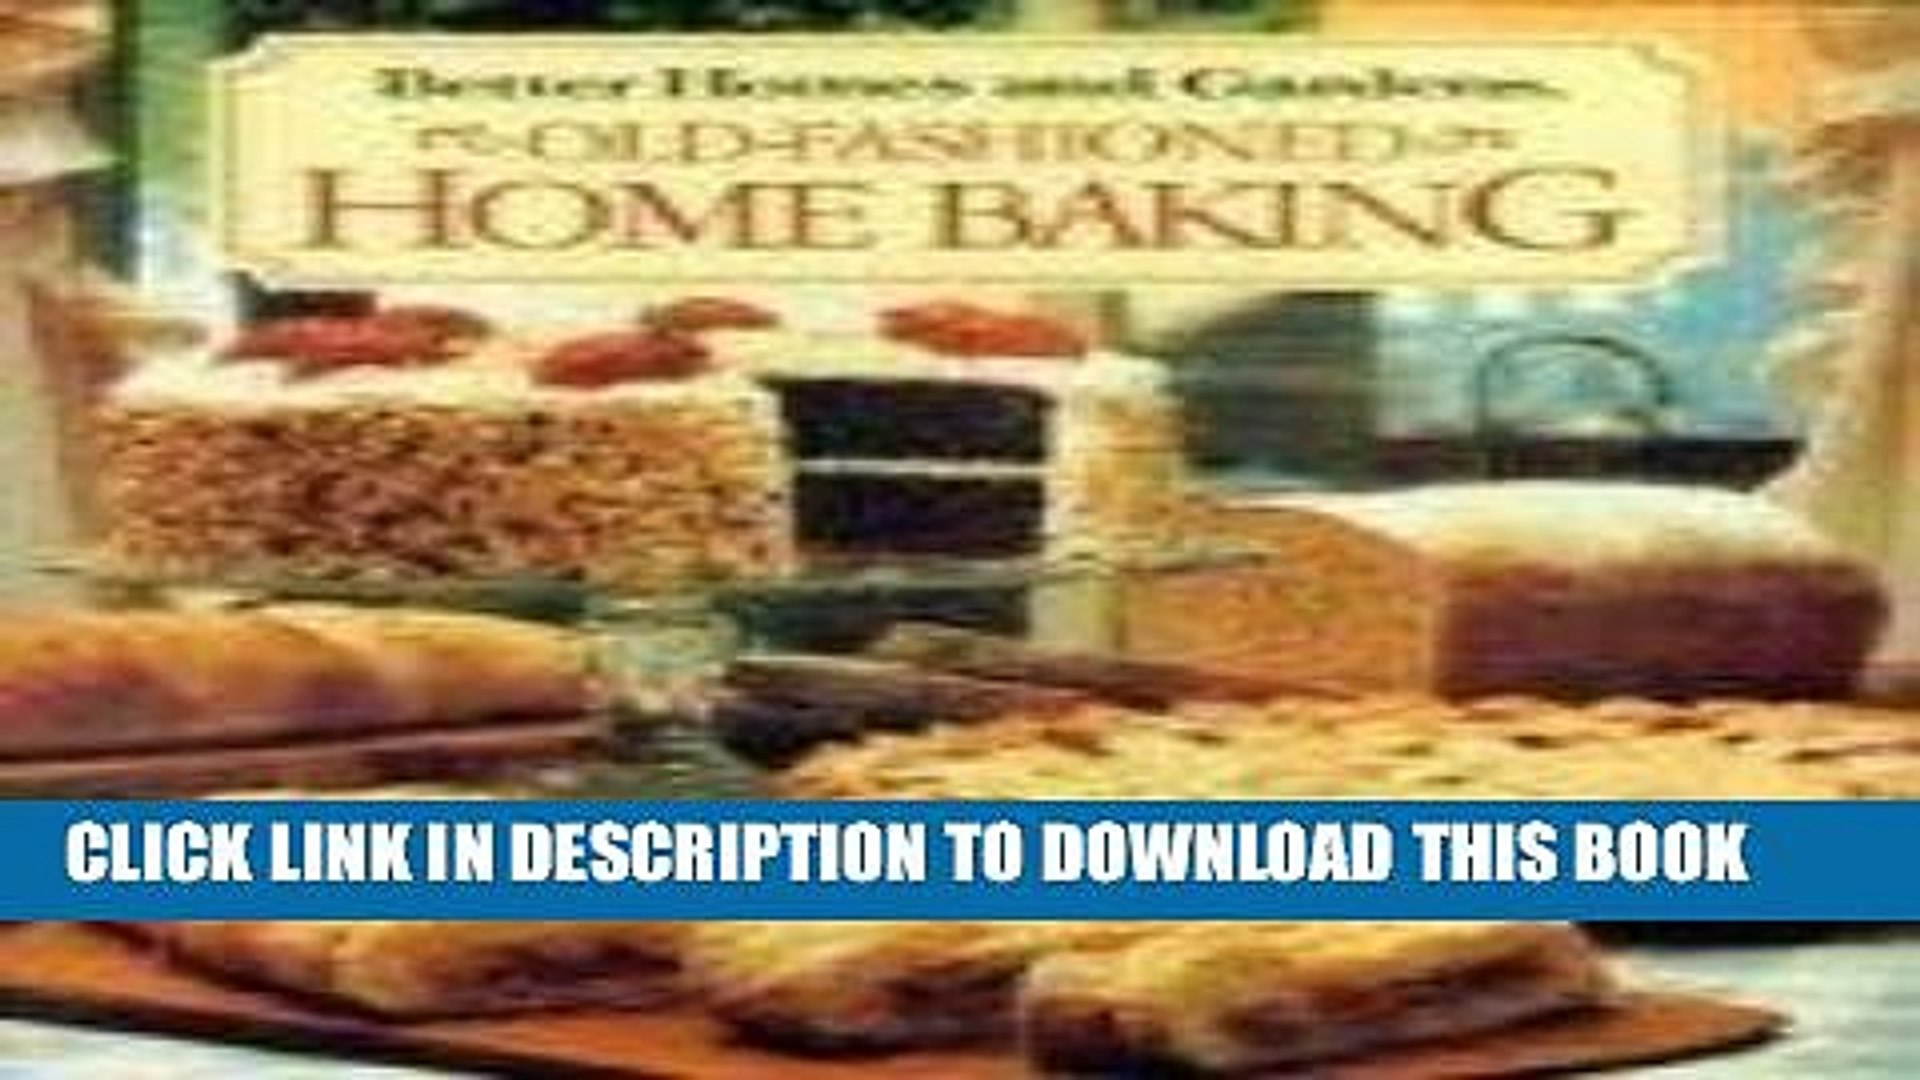 [PDF] Better Homes and Gardens Old-Fashioned Home Baking (Better Homes   Gardens Test Kitchen)